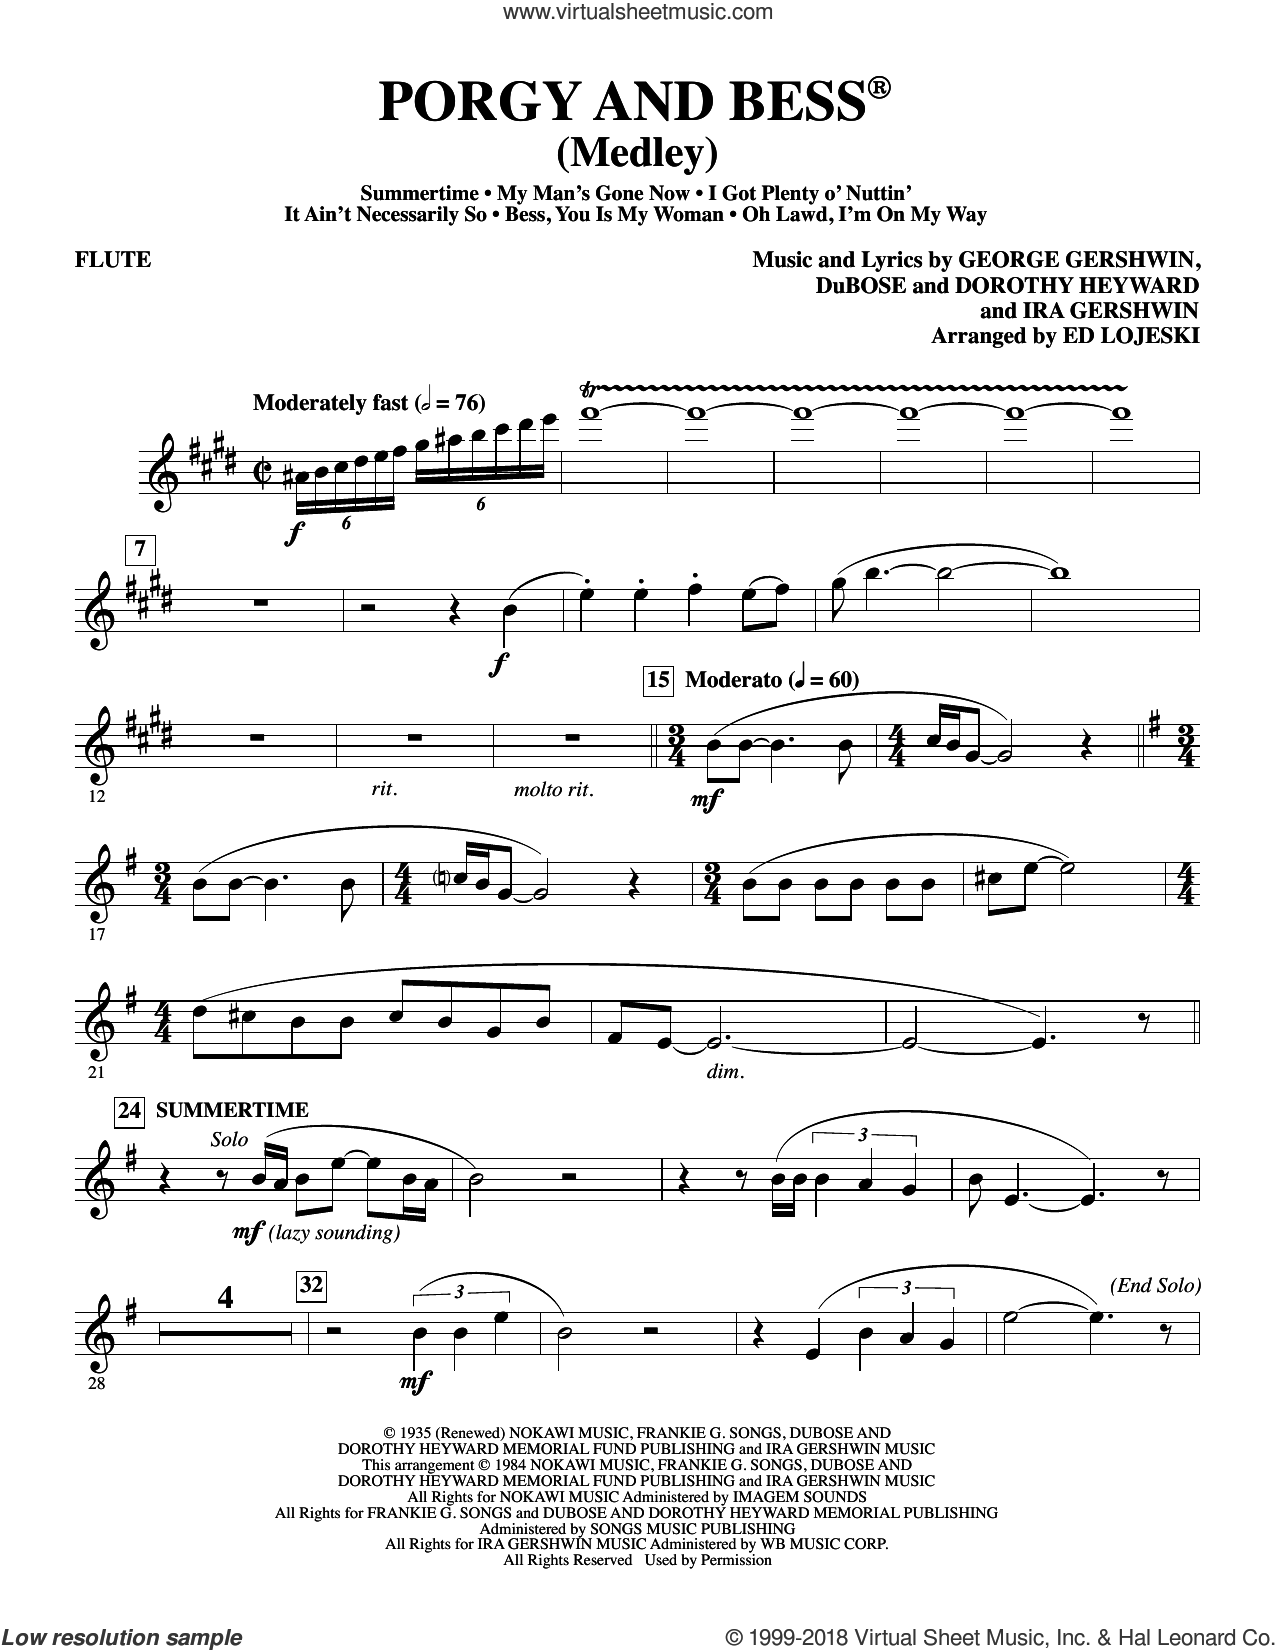 Porgy and Bess (Medley) sheet music for orchestra/band (flute) by George Gershwin, Ed Lojeski, Dorothy Heyward, DuBose Heyward and Ira Gershwin, intermediate skill level